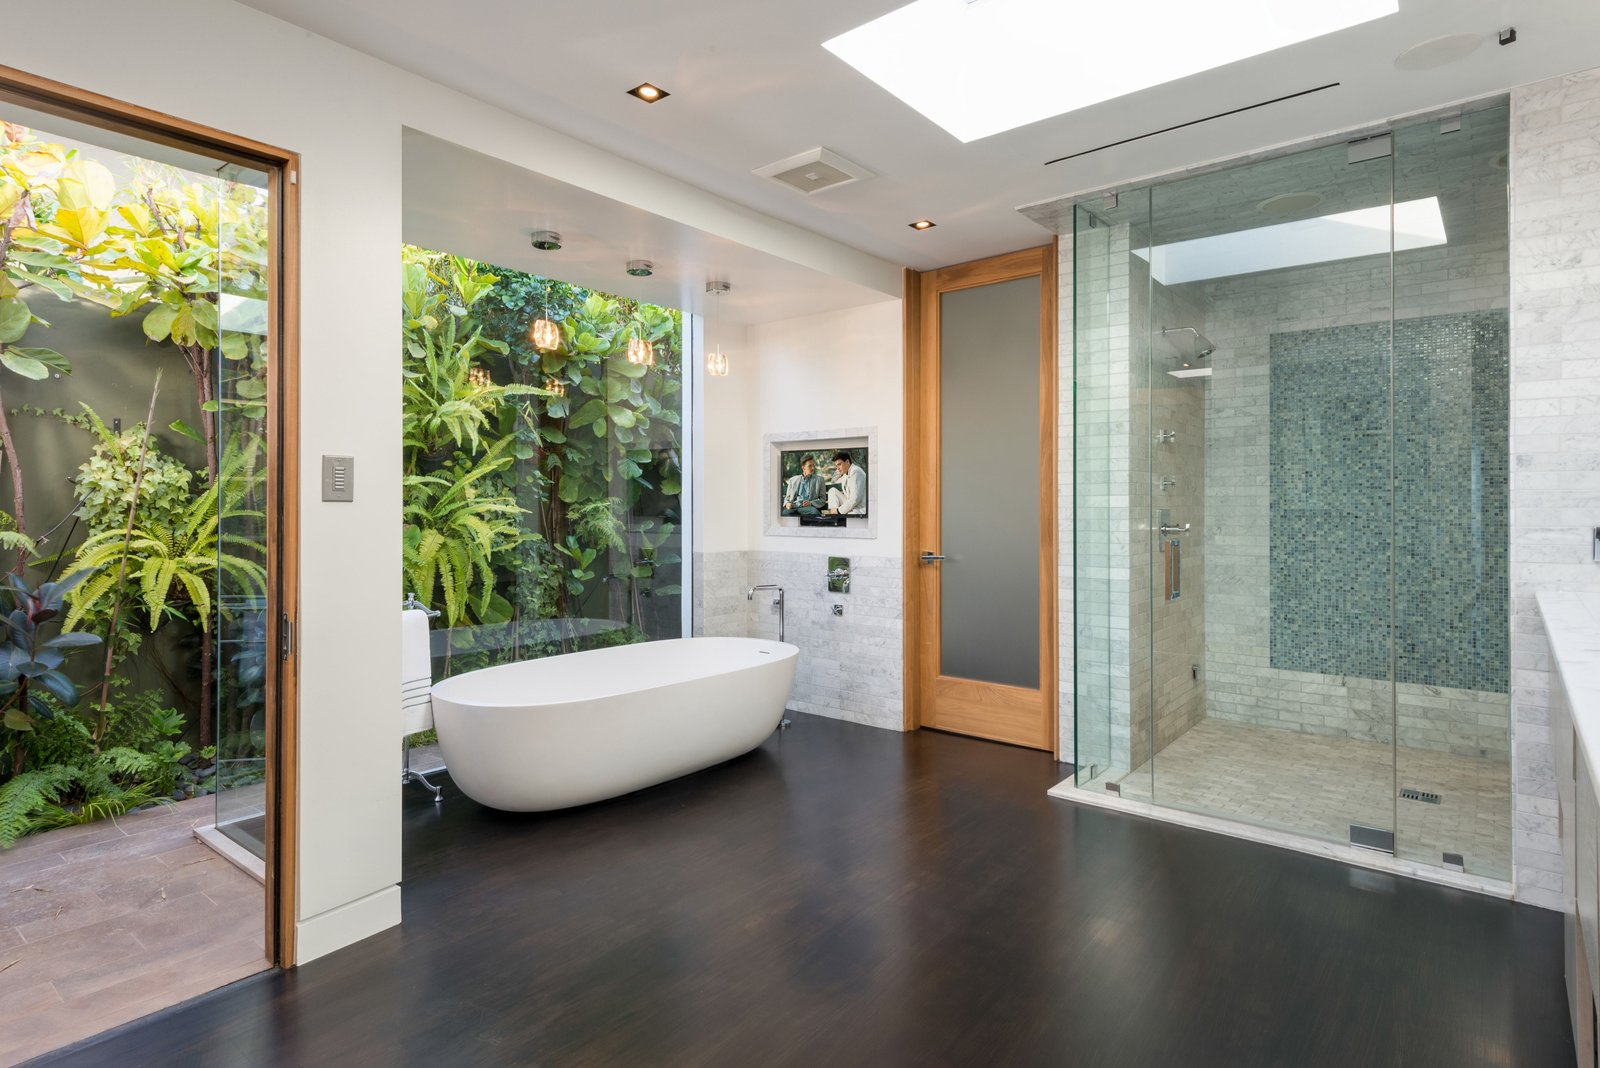 Bath, Freestanding, Ceiling, Dark Hardwood, Full, and Stone Tile  Bath Ceiling Dark Hardwood Photos from 'Friends' Star Matthew Perry's Midcentury Stunner in the Hollywood Hills Is For Sale